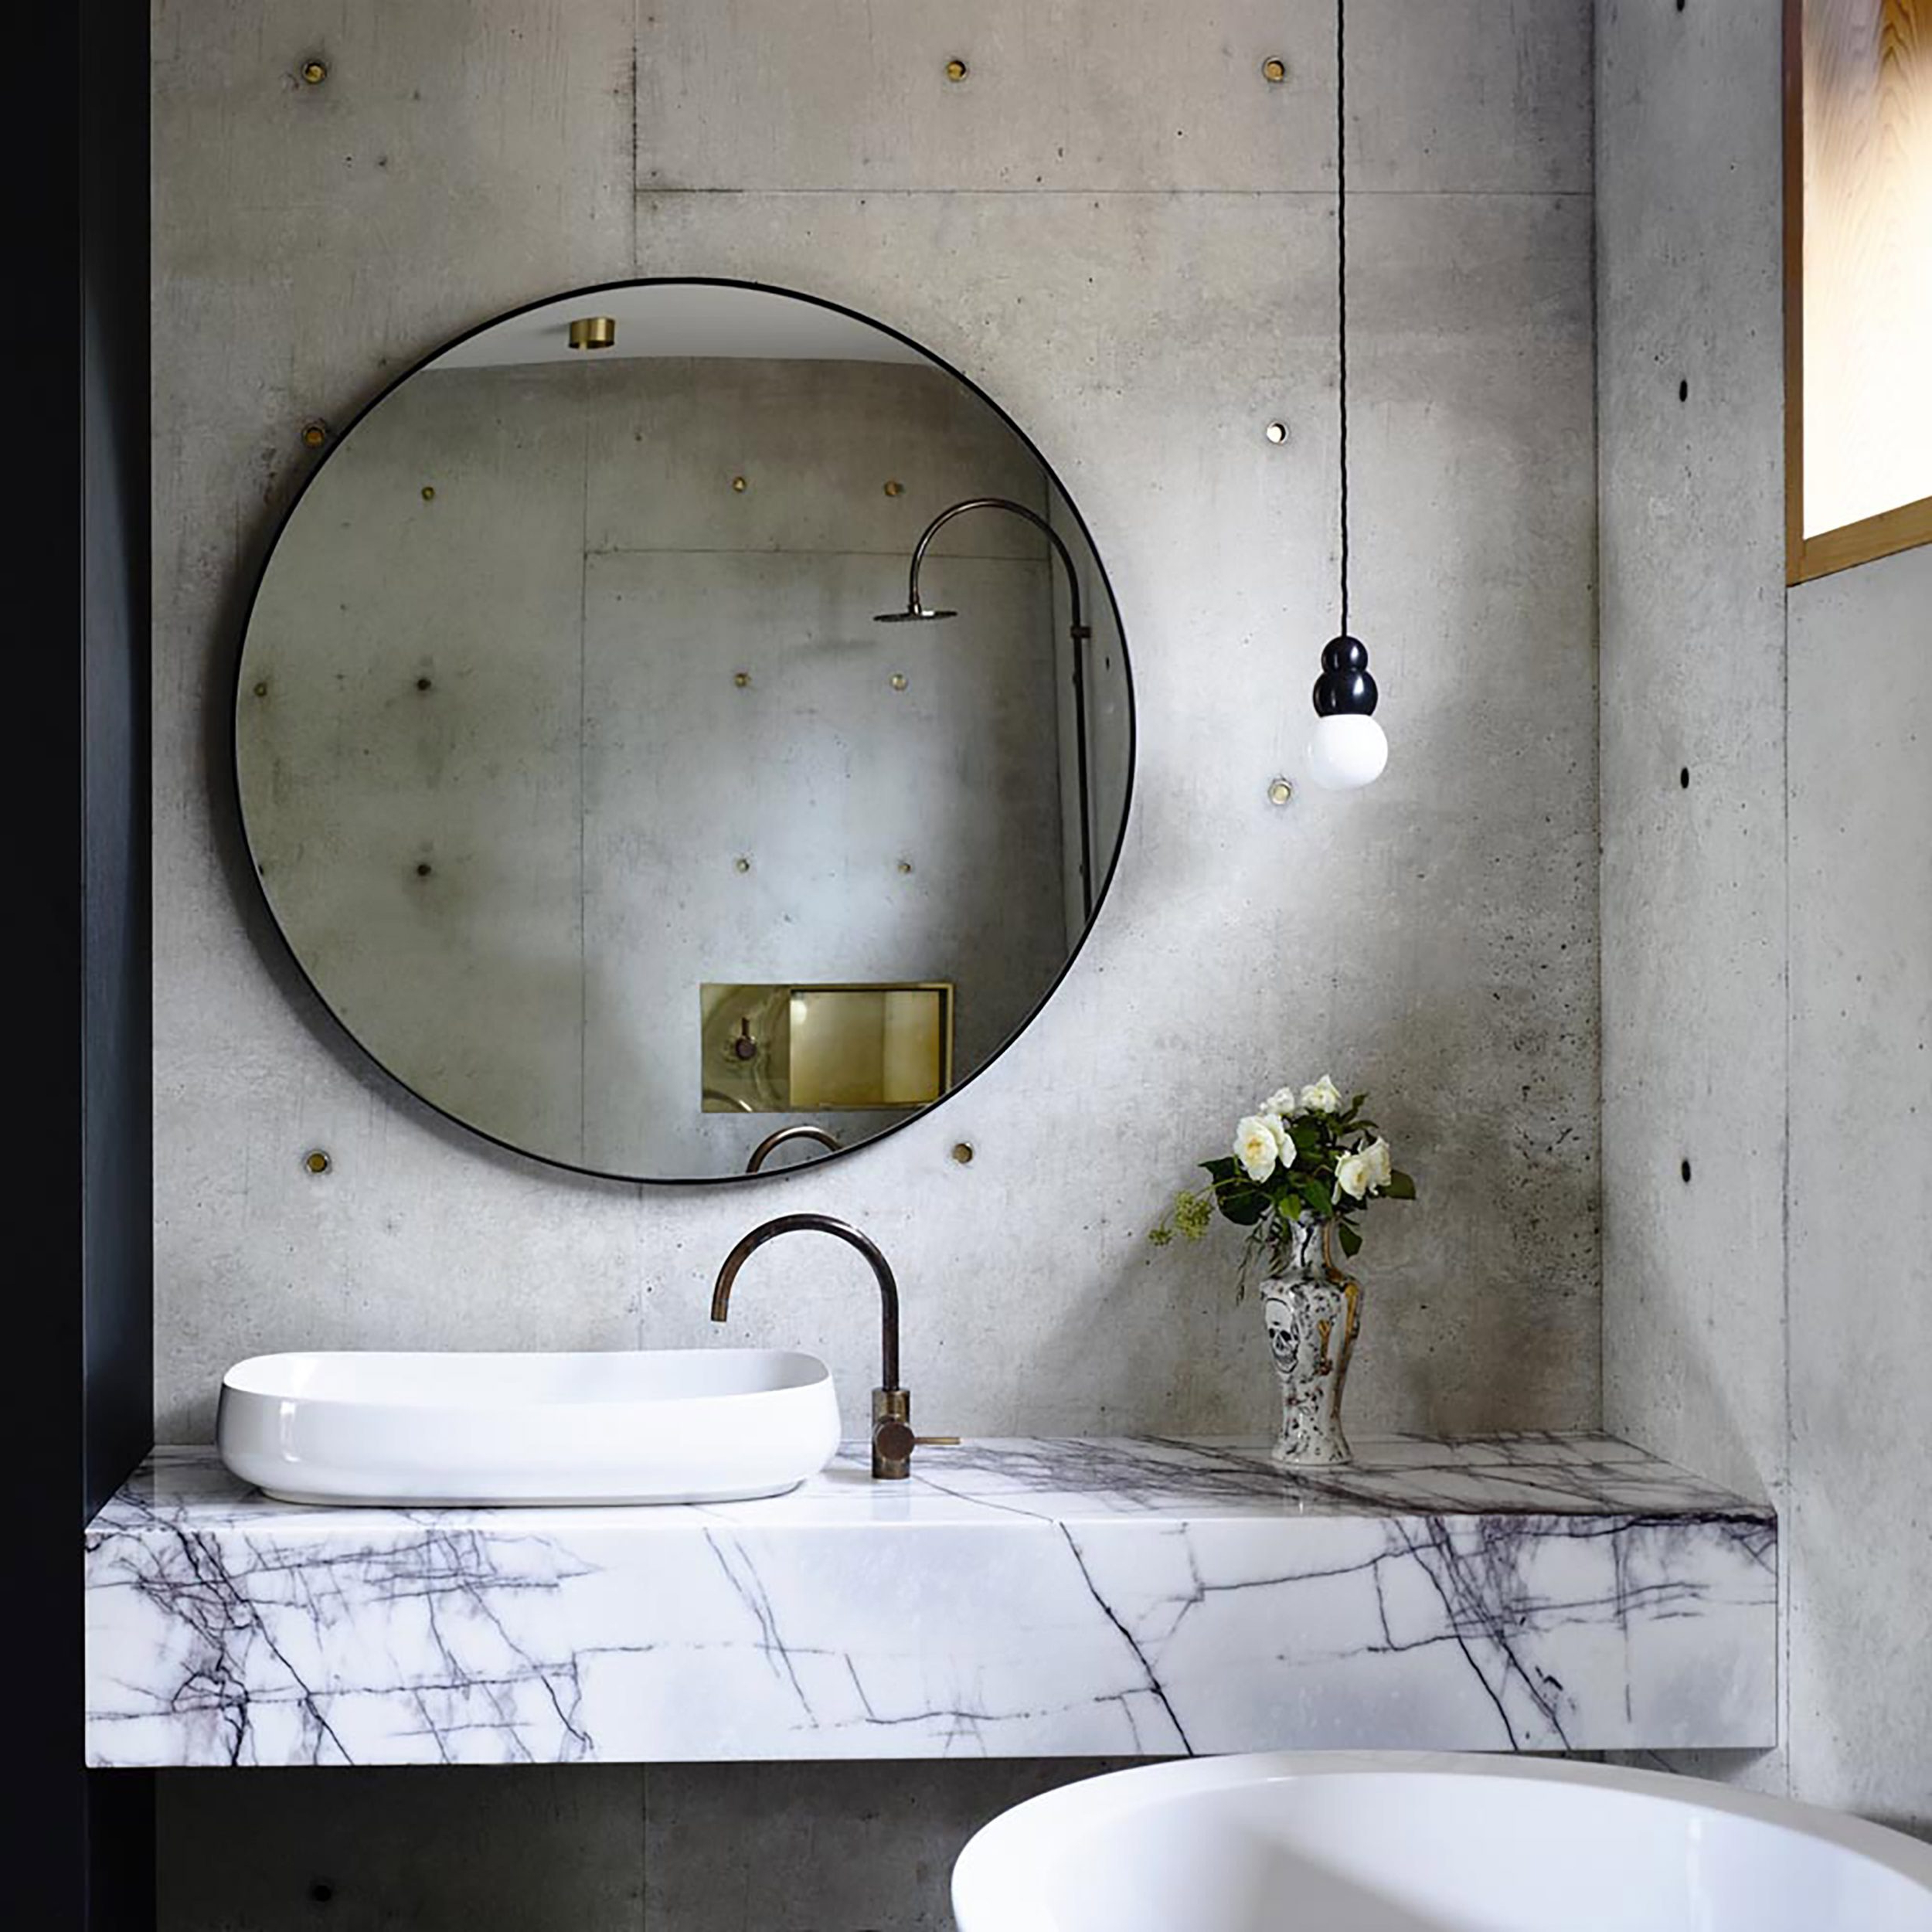 Popular 17 Fresh & Inspiring Bathroom Mirror Ideas To Shake Up Your Morning Throughout Hanging Wall Mirrors For Bathroom (Gallery 18 of 20)